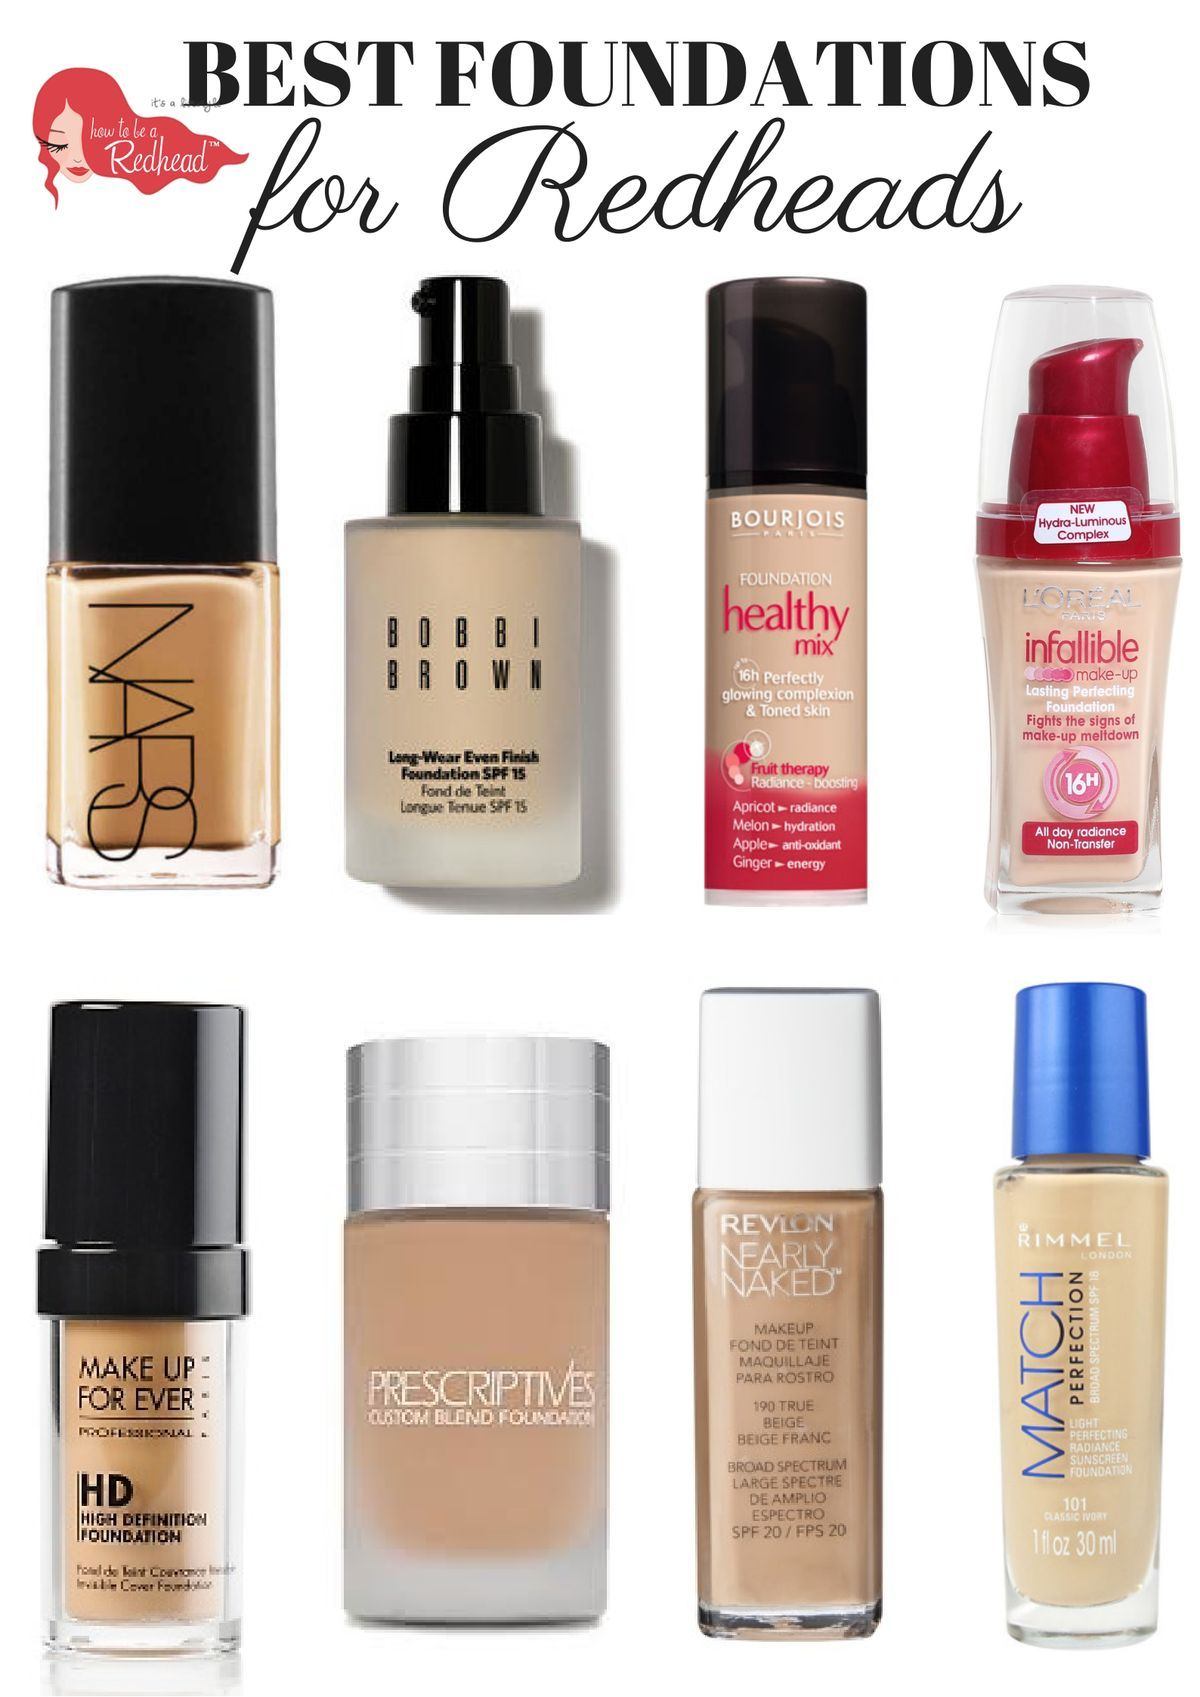 The Top Foundation Picks For Redheads